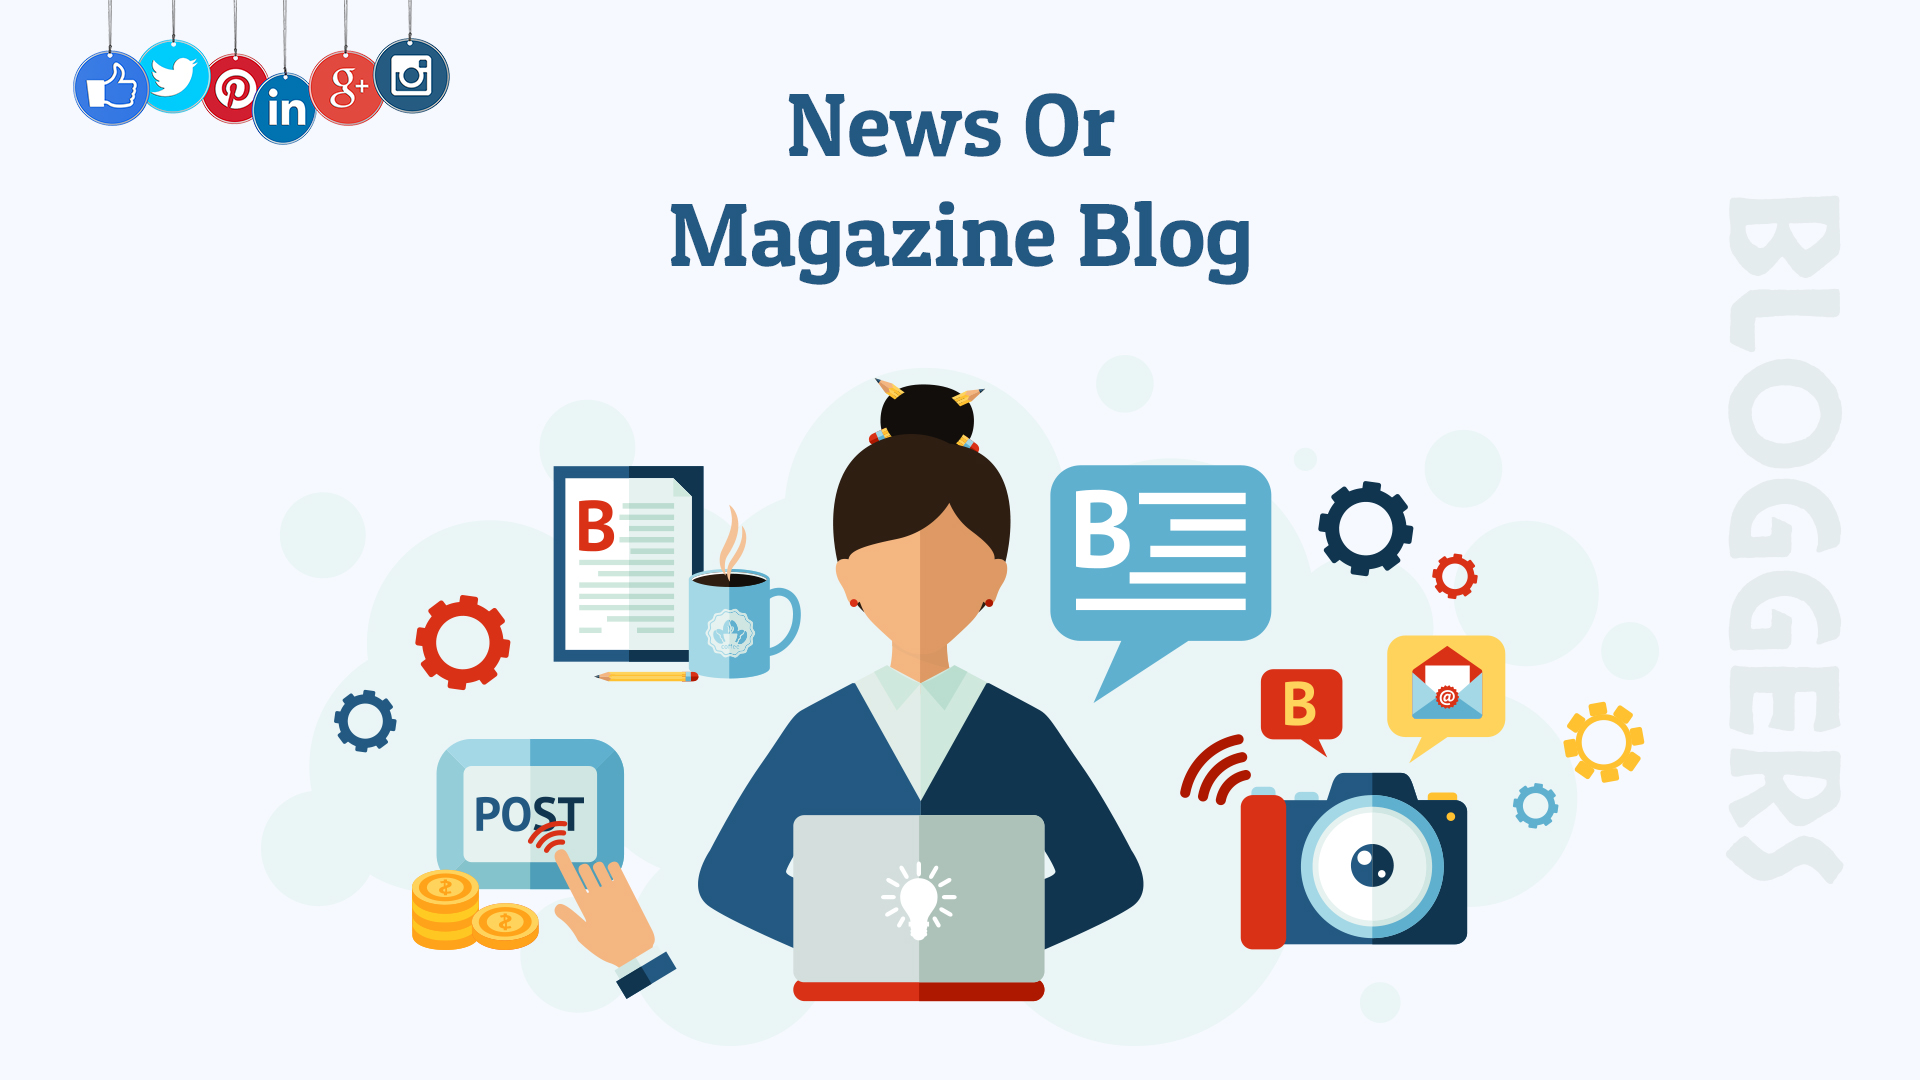 Unravel The 8 Most Beautiful WordPress Themes For News & Magazine Blog